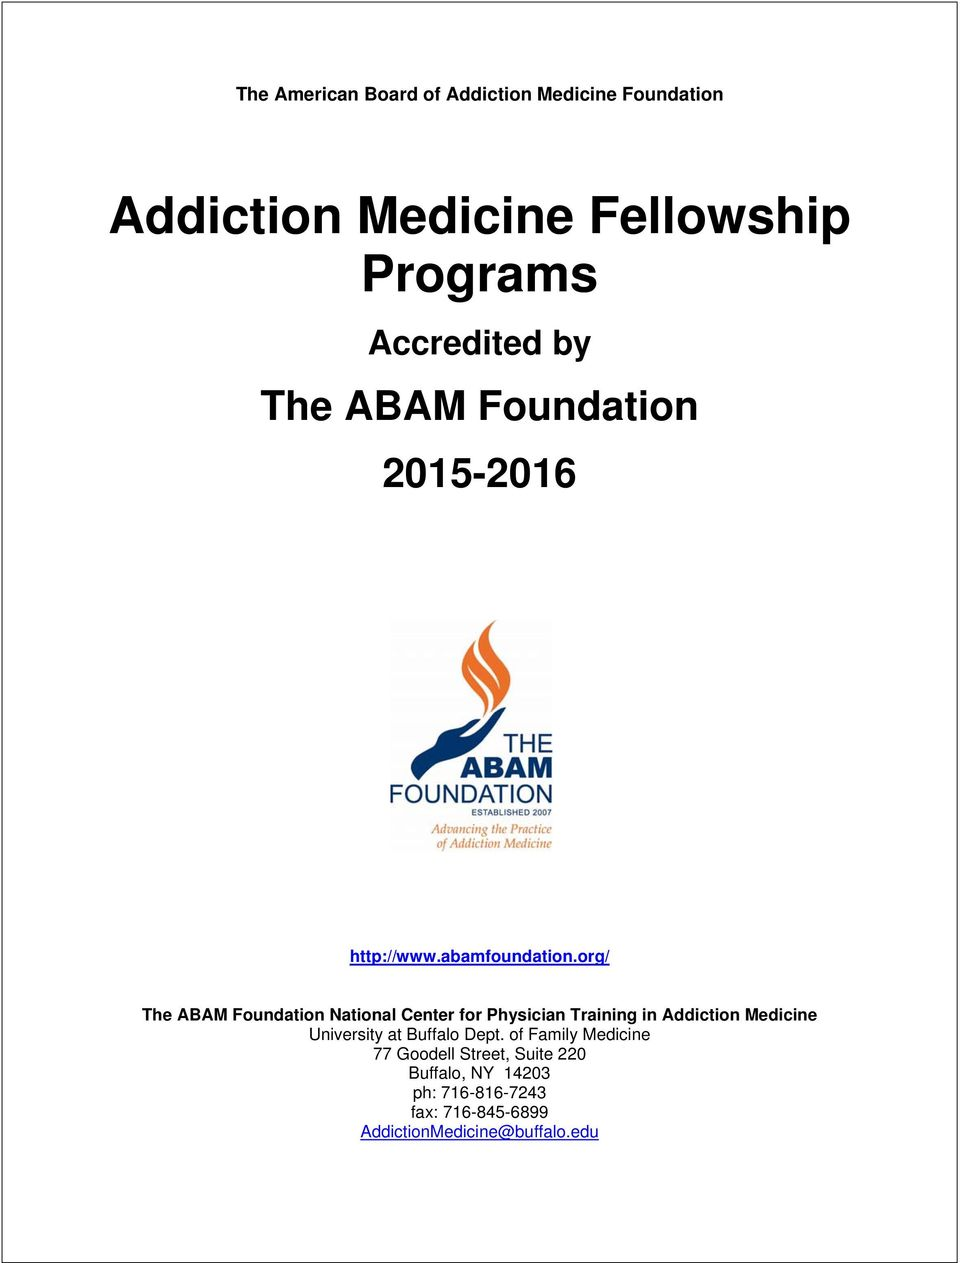 org/ The ABAM Foundation National Center for Physician Training in Addiction Medicine University at